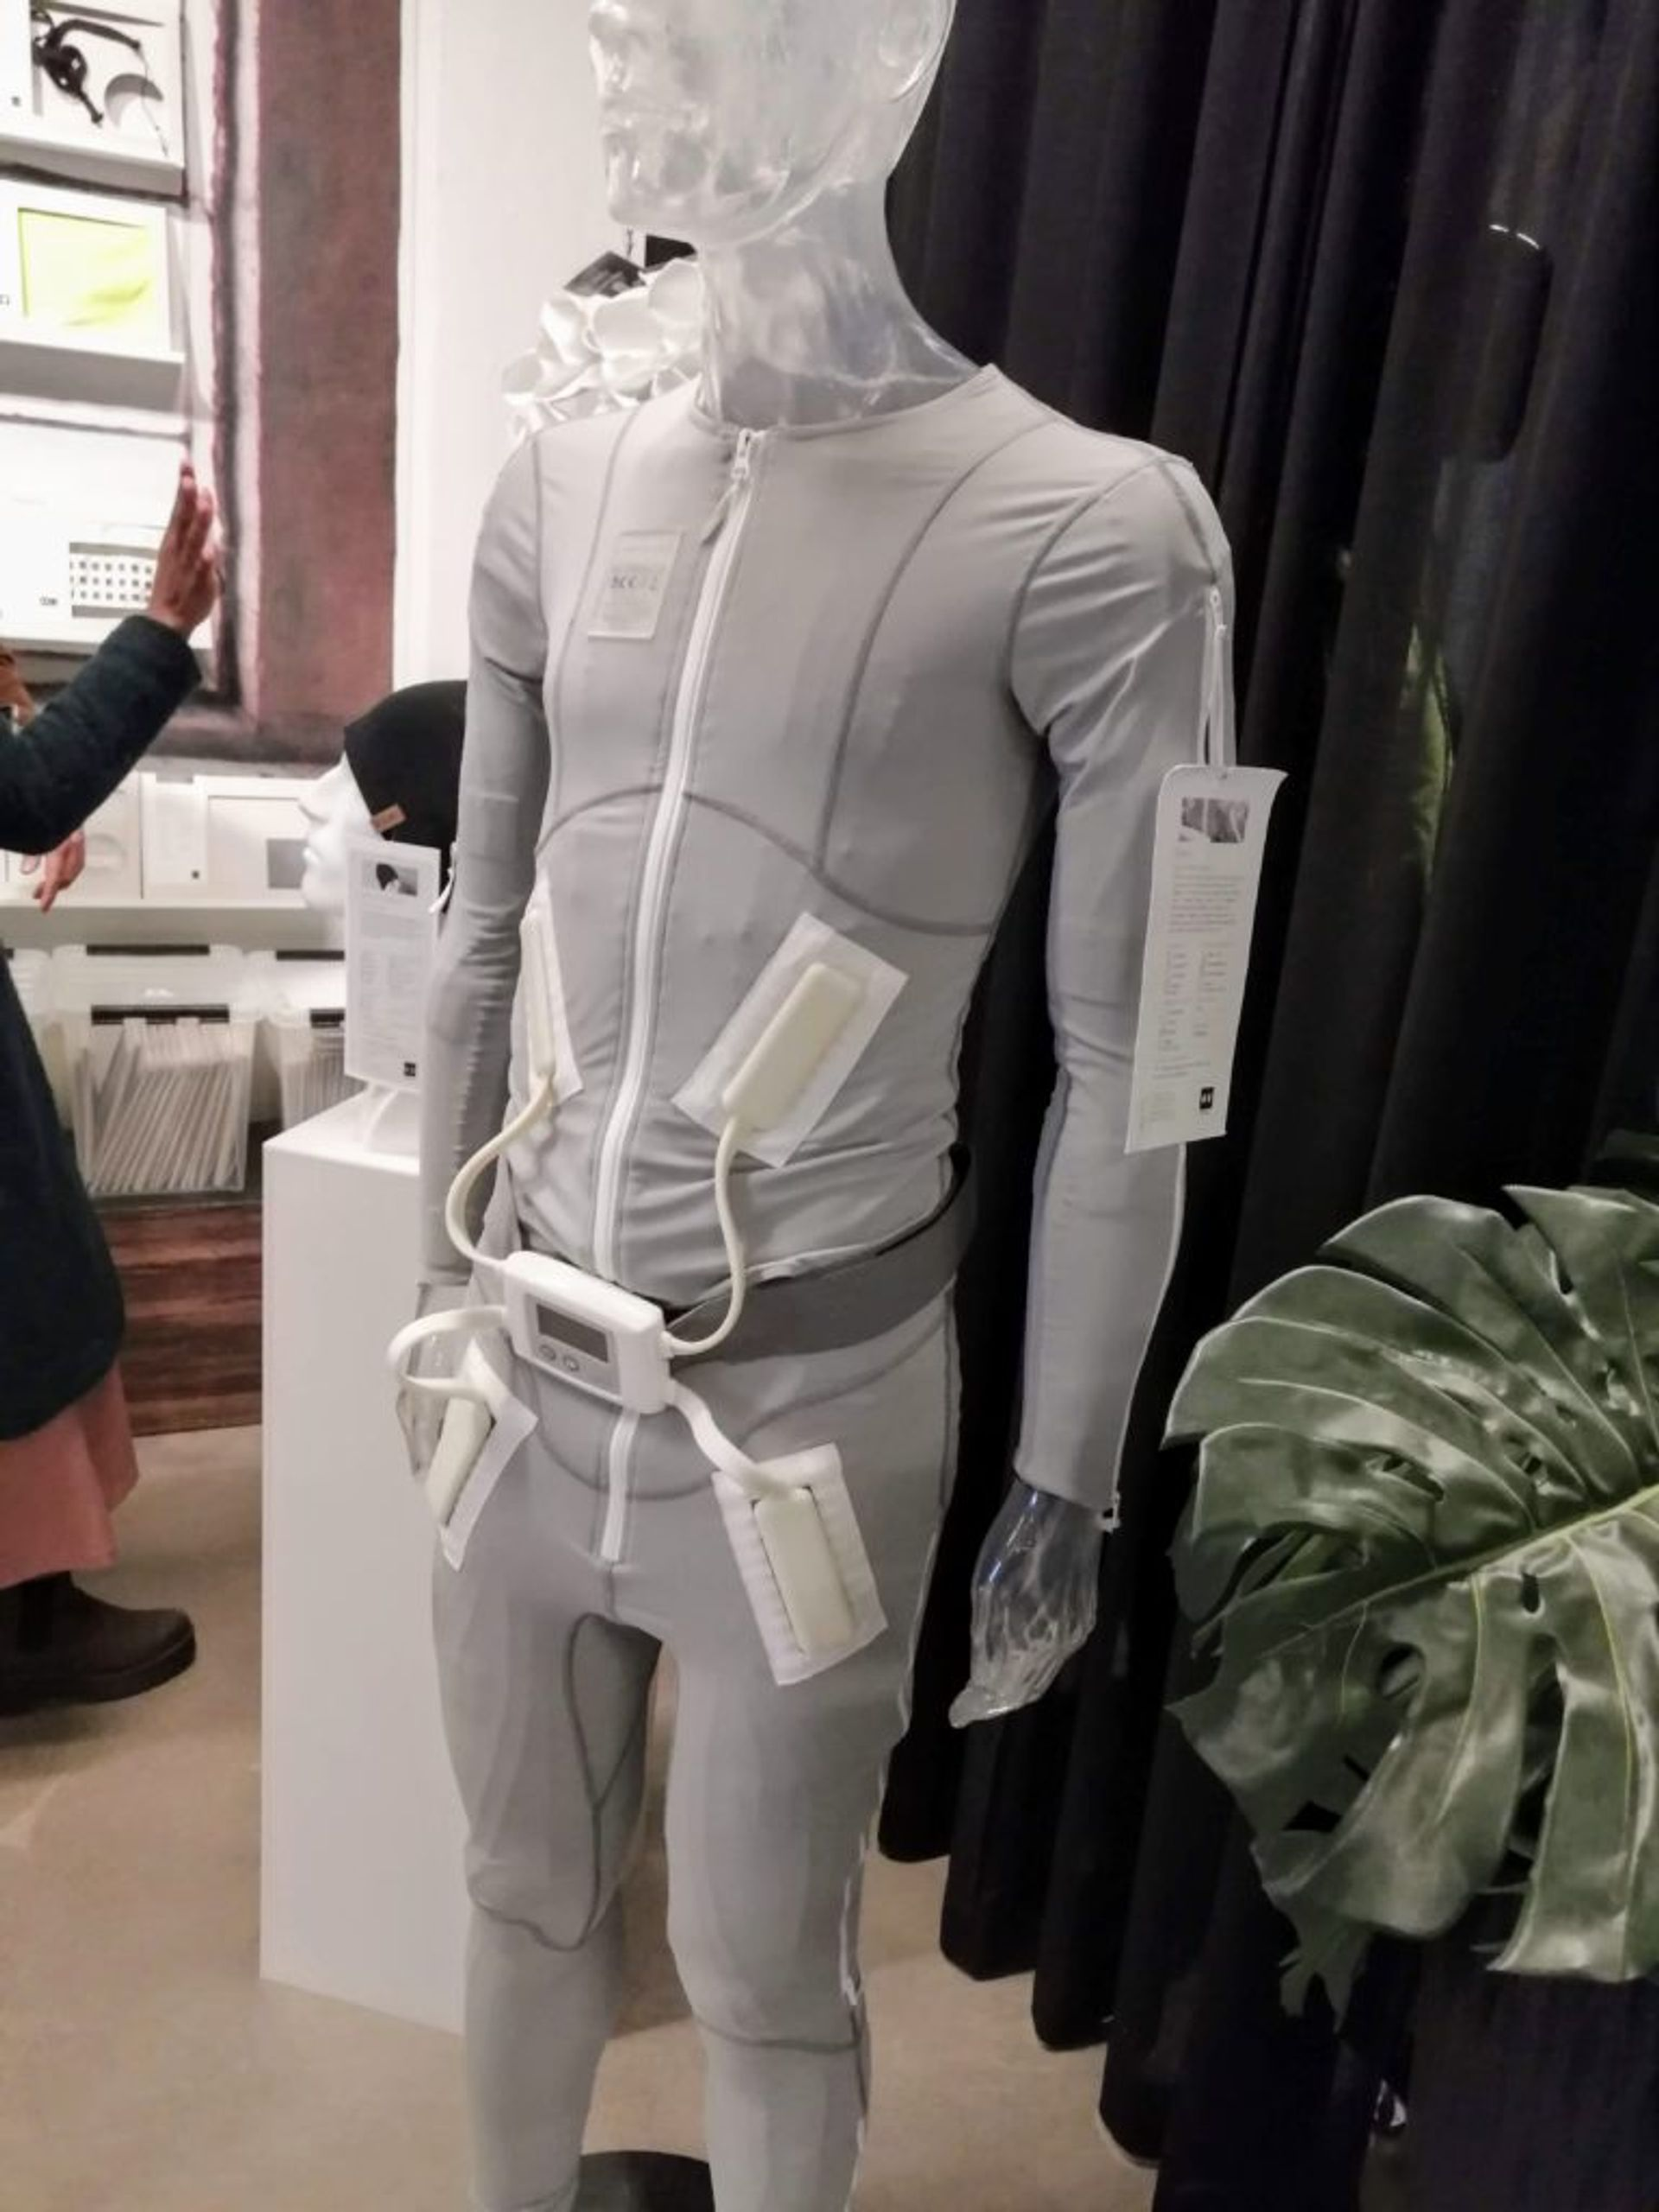 A grey bodysuit on a mannequin with electrical currents attached.